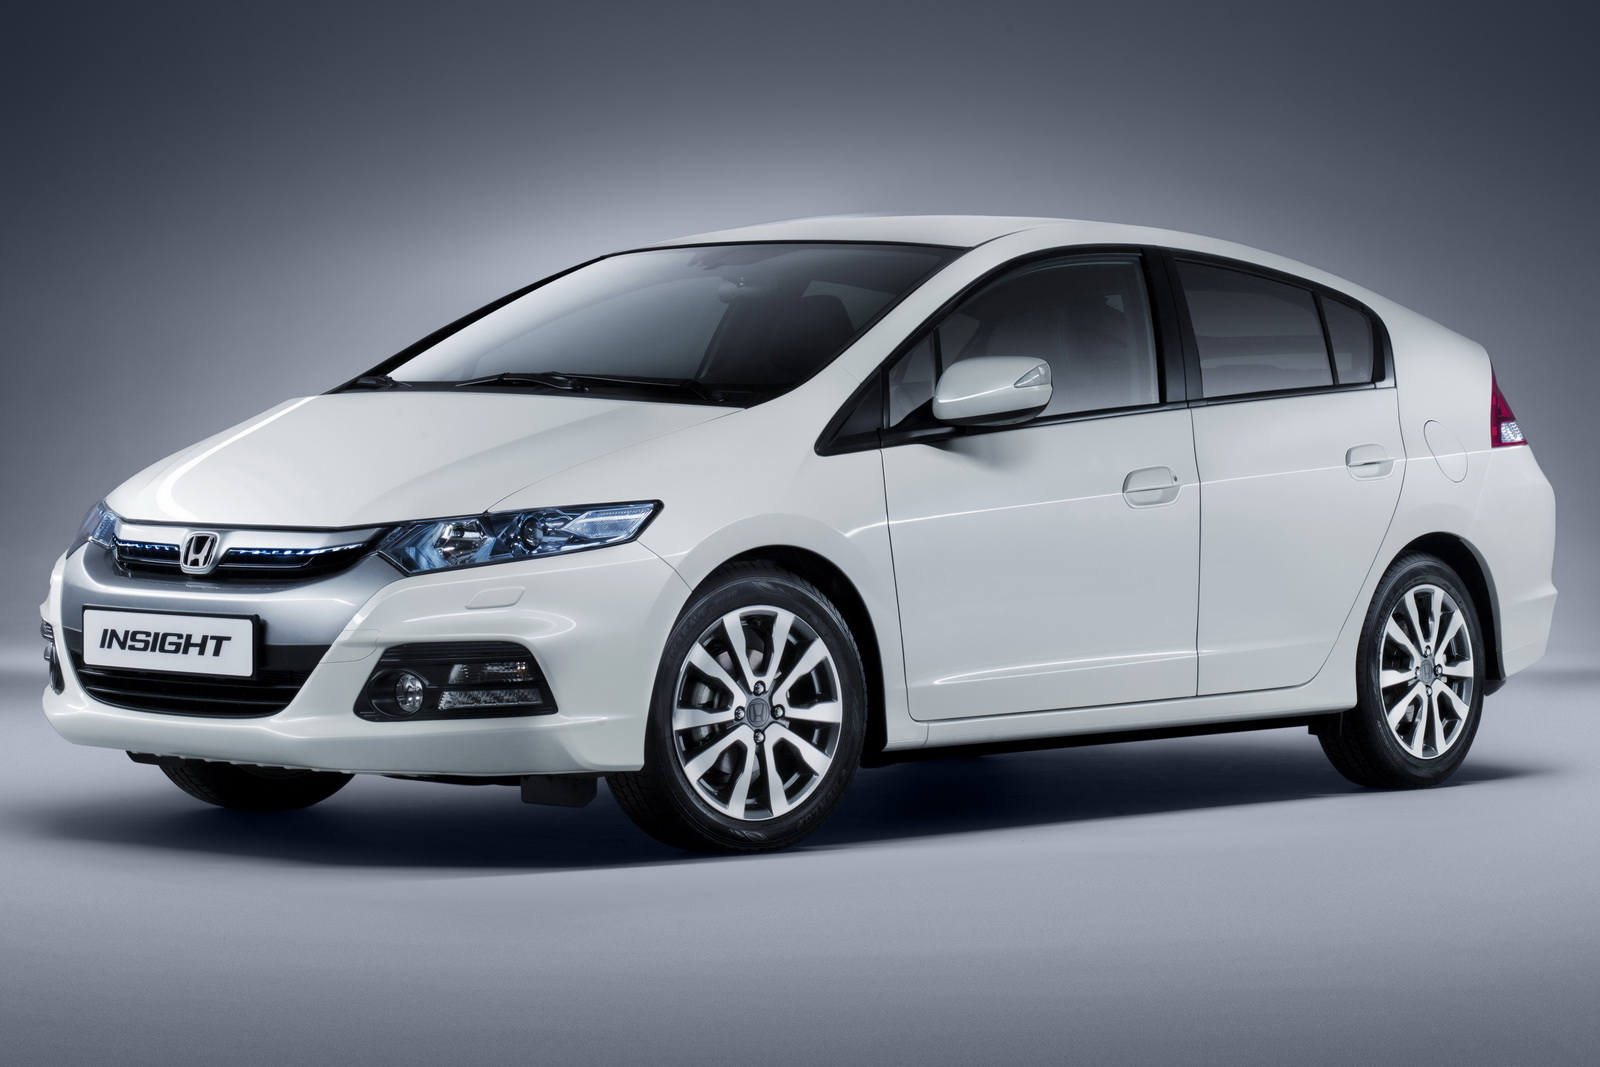 Honda Insight #6